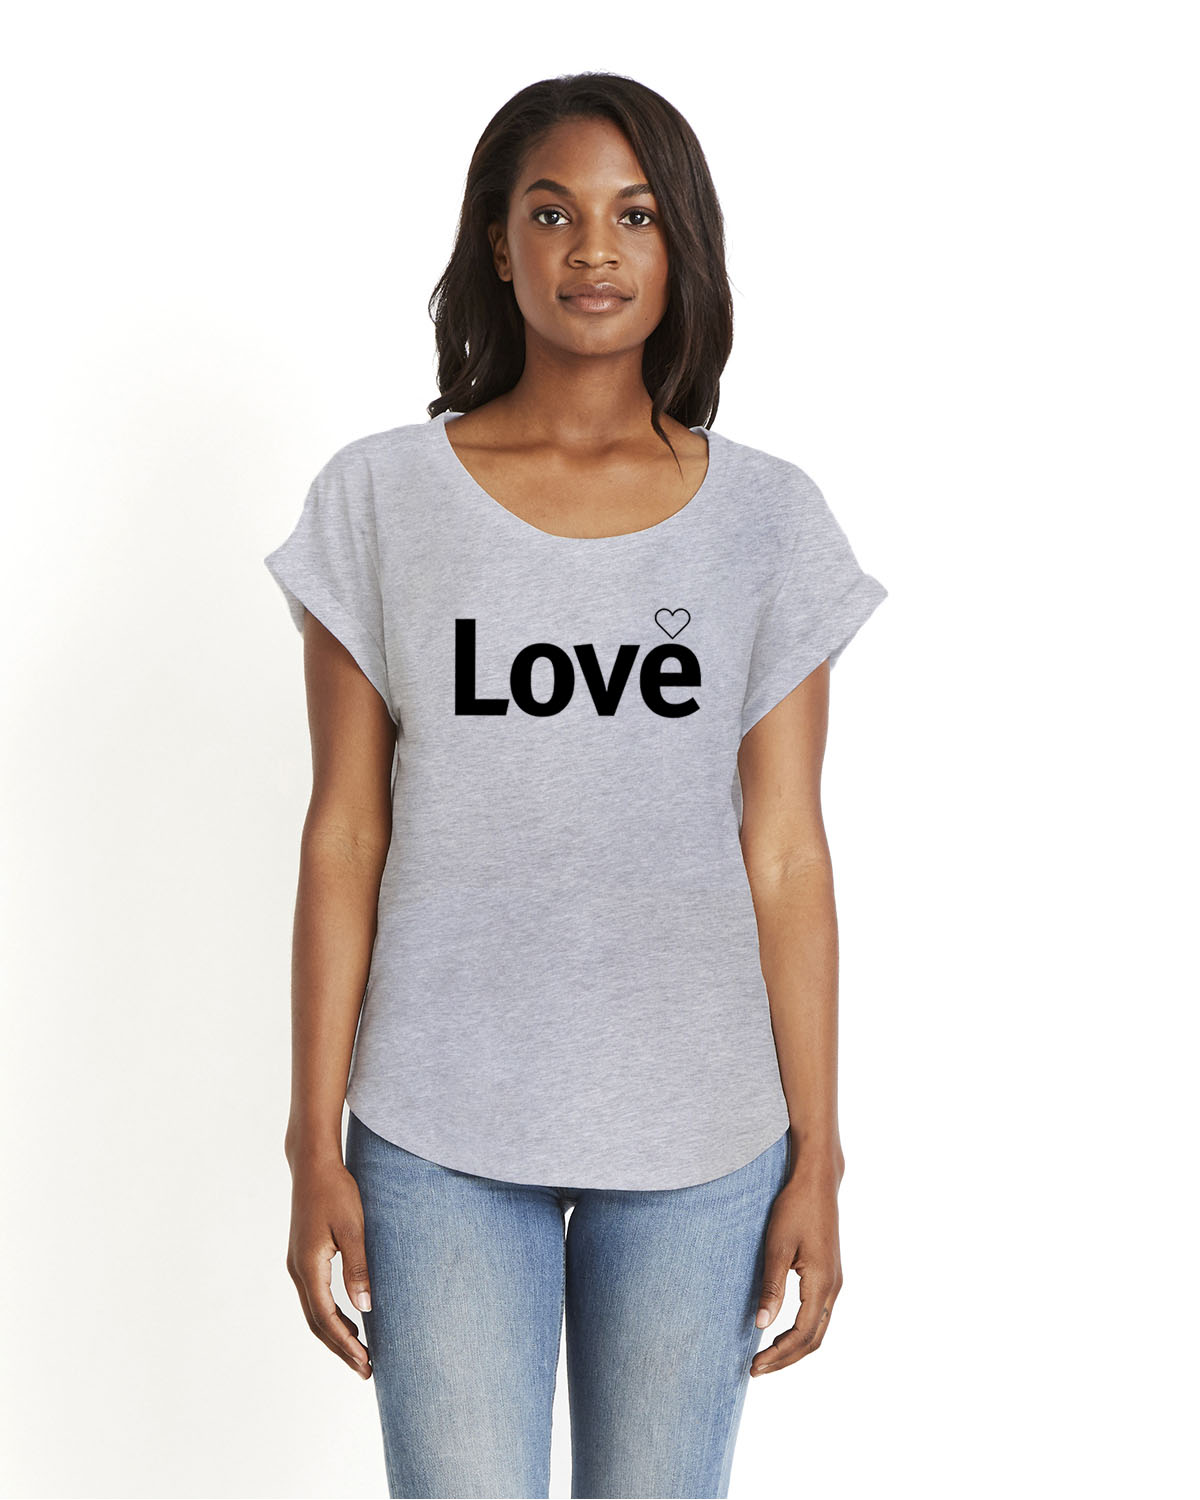 Love Dolman Sleeve T-shirt for women (gray)